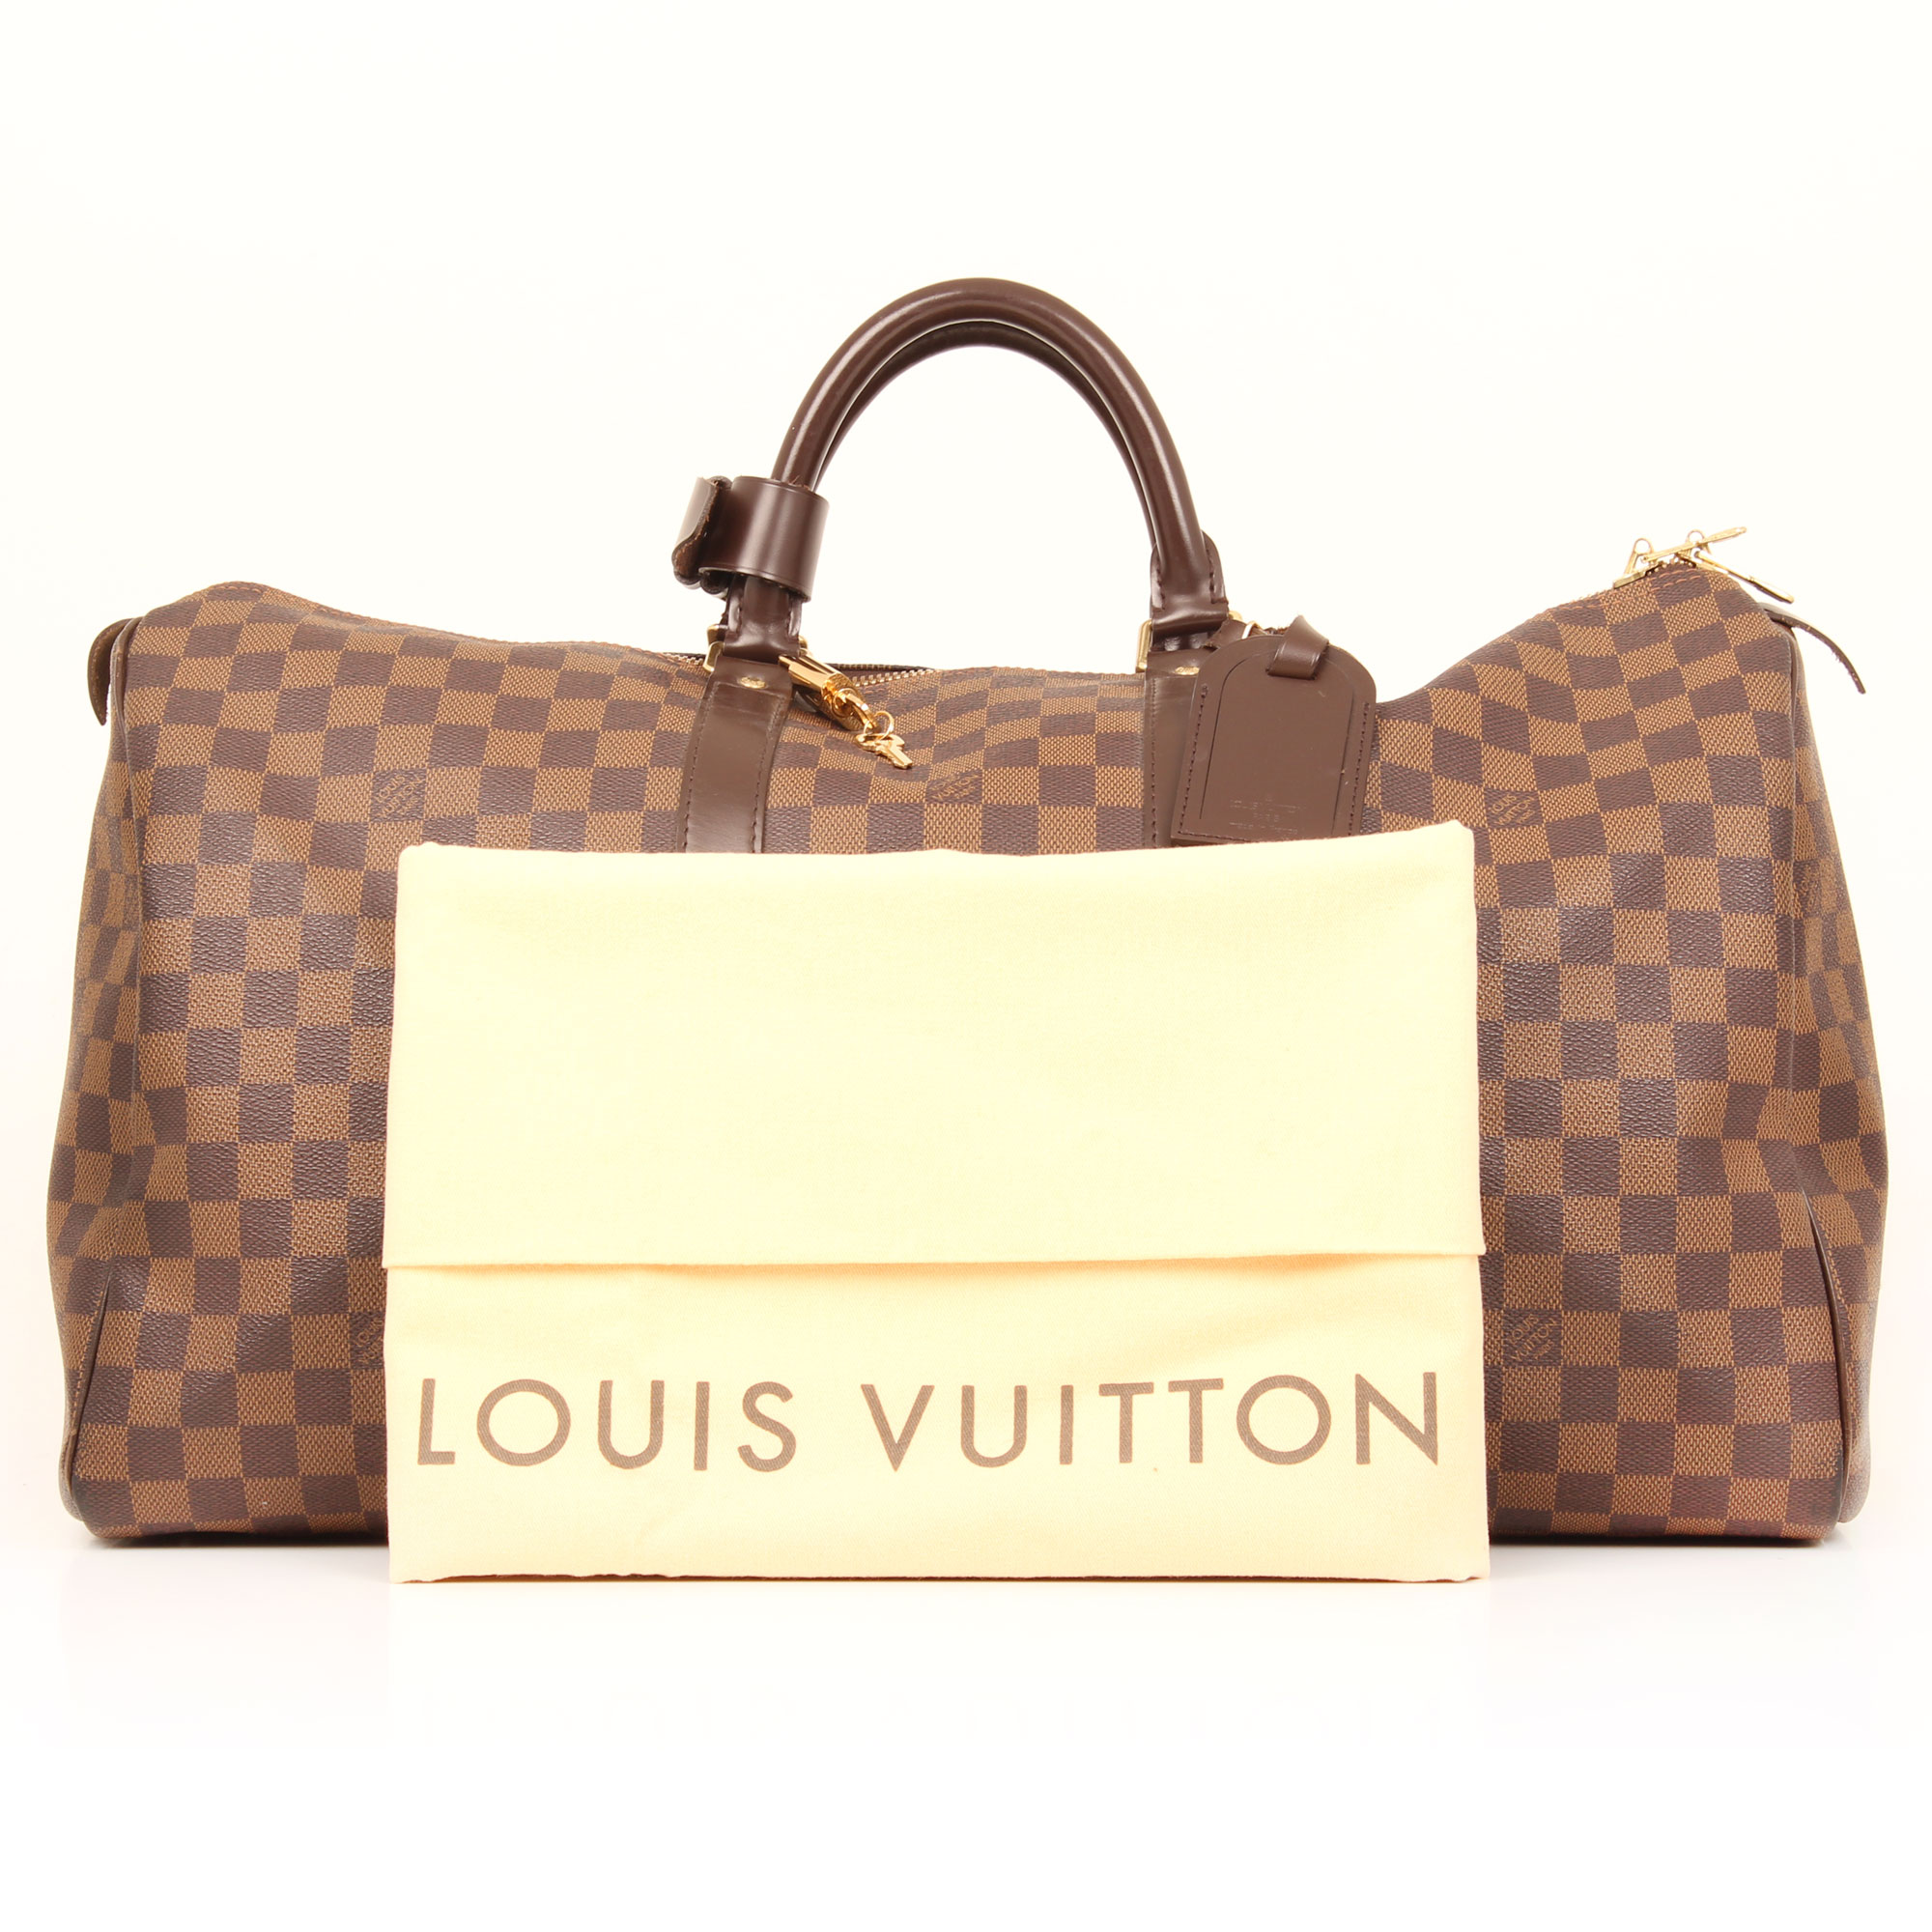 travel-bag-louis-vuitton-keepall-50-damier-ebene-dustbag